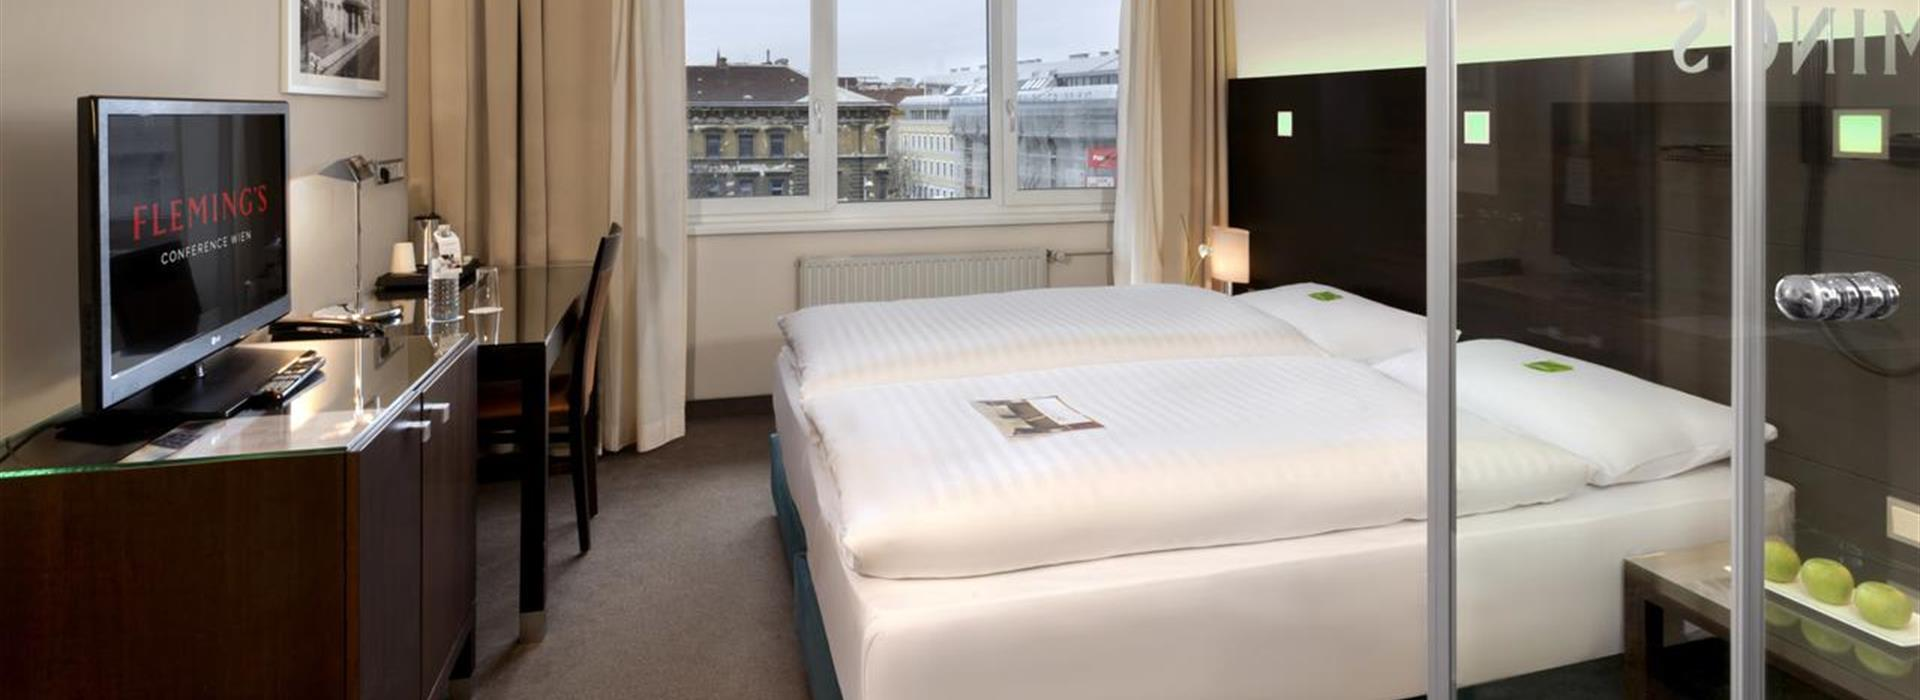 fleming's-conference-hotel-wien